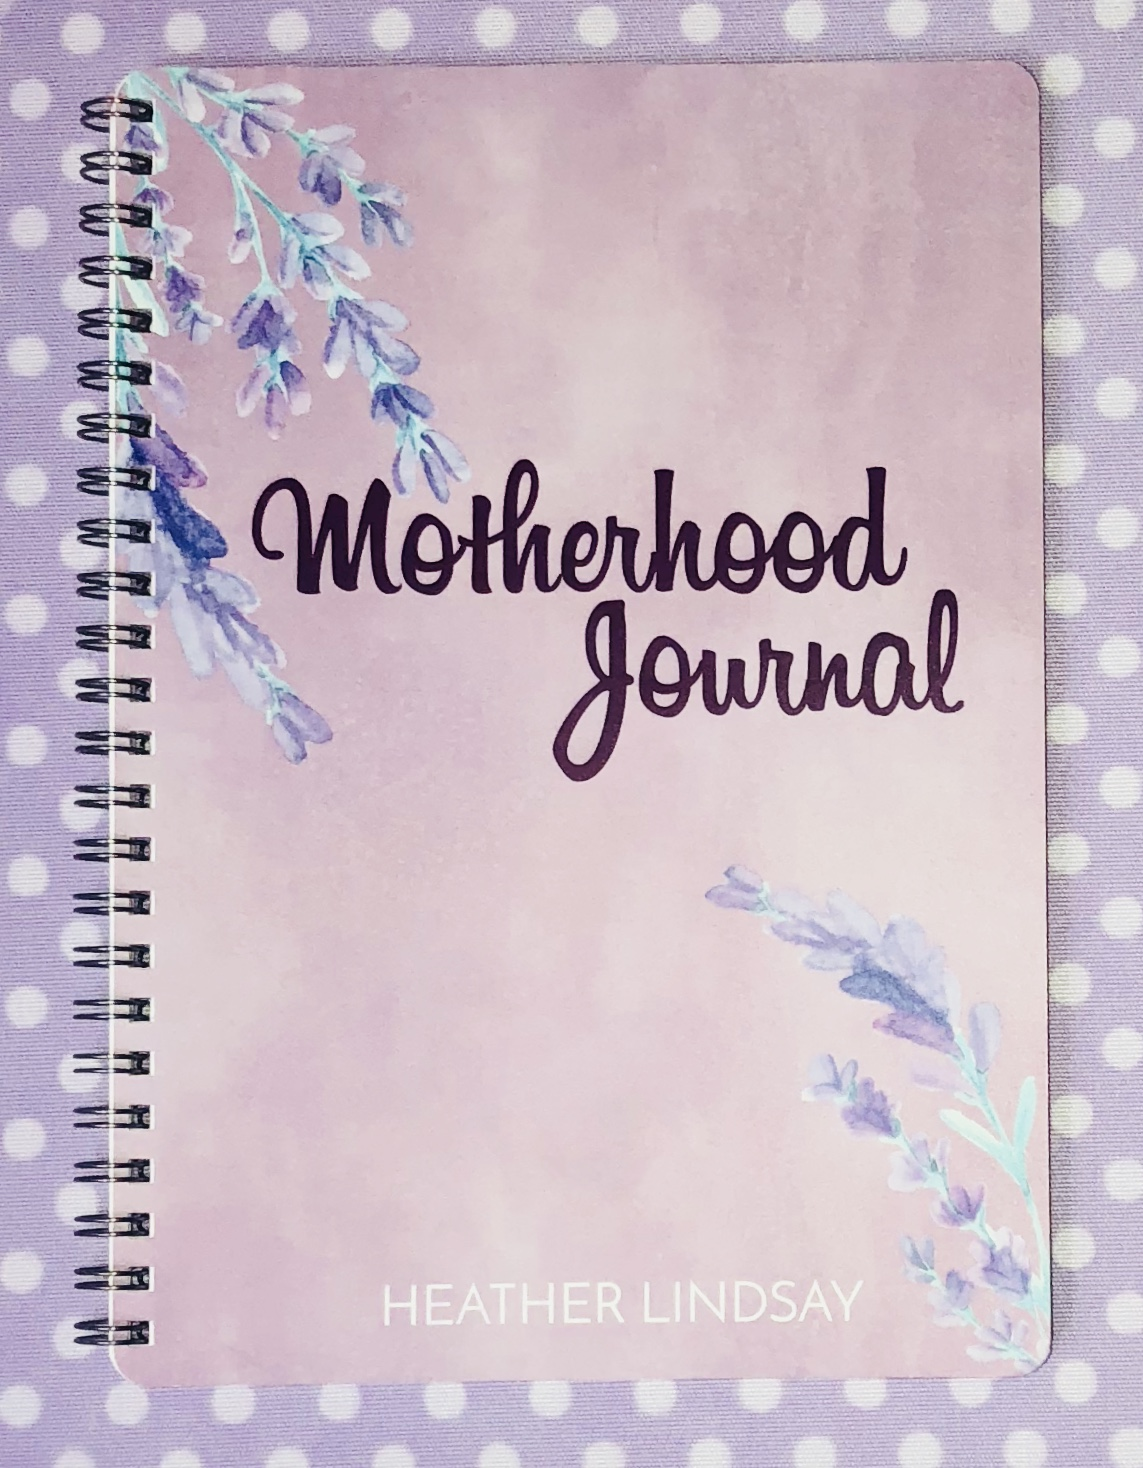 IMG 3921 - Motherhood Journal